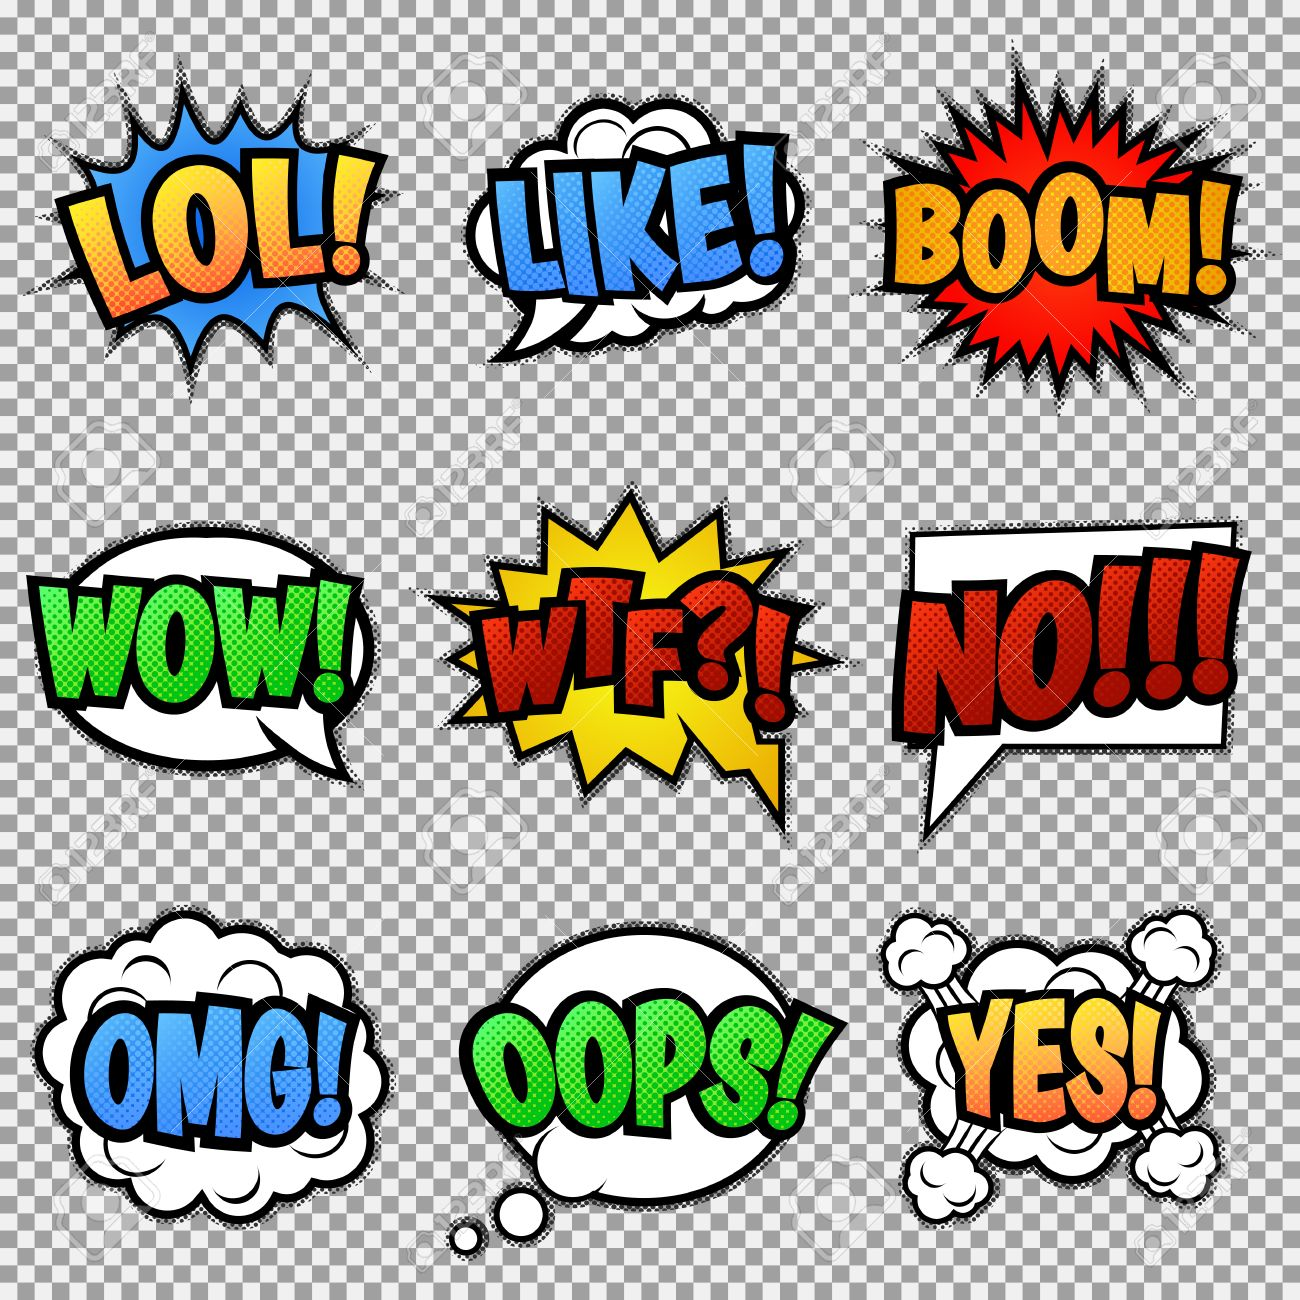 Set of nine different colorful comic stickers pop art speech bubbles with lol